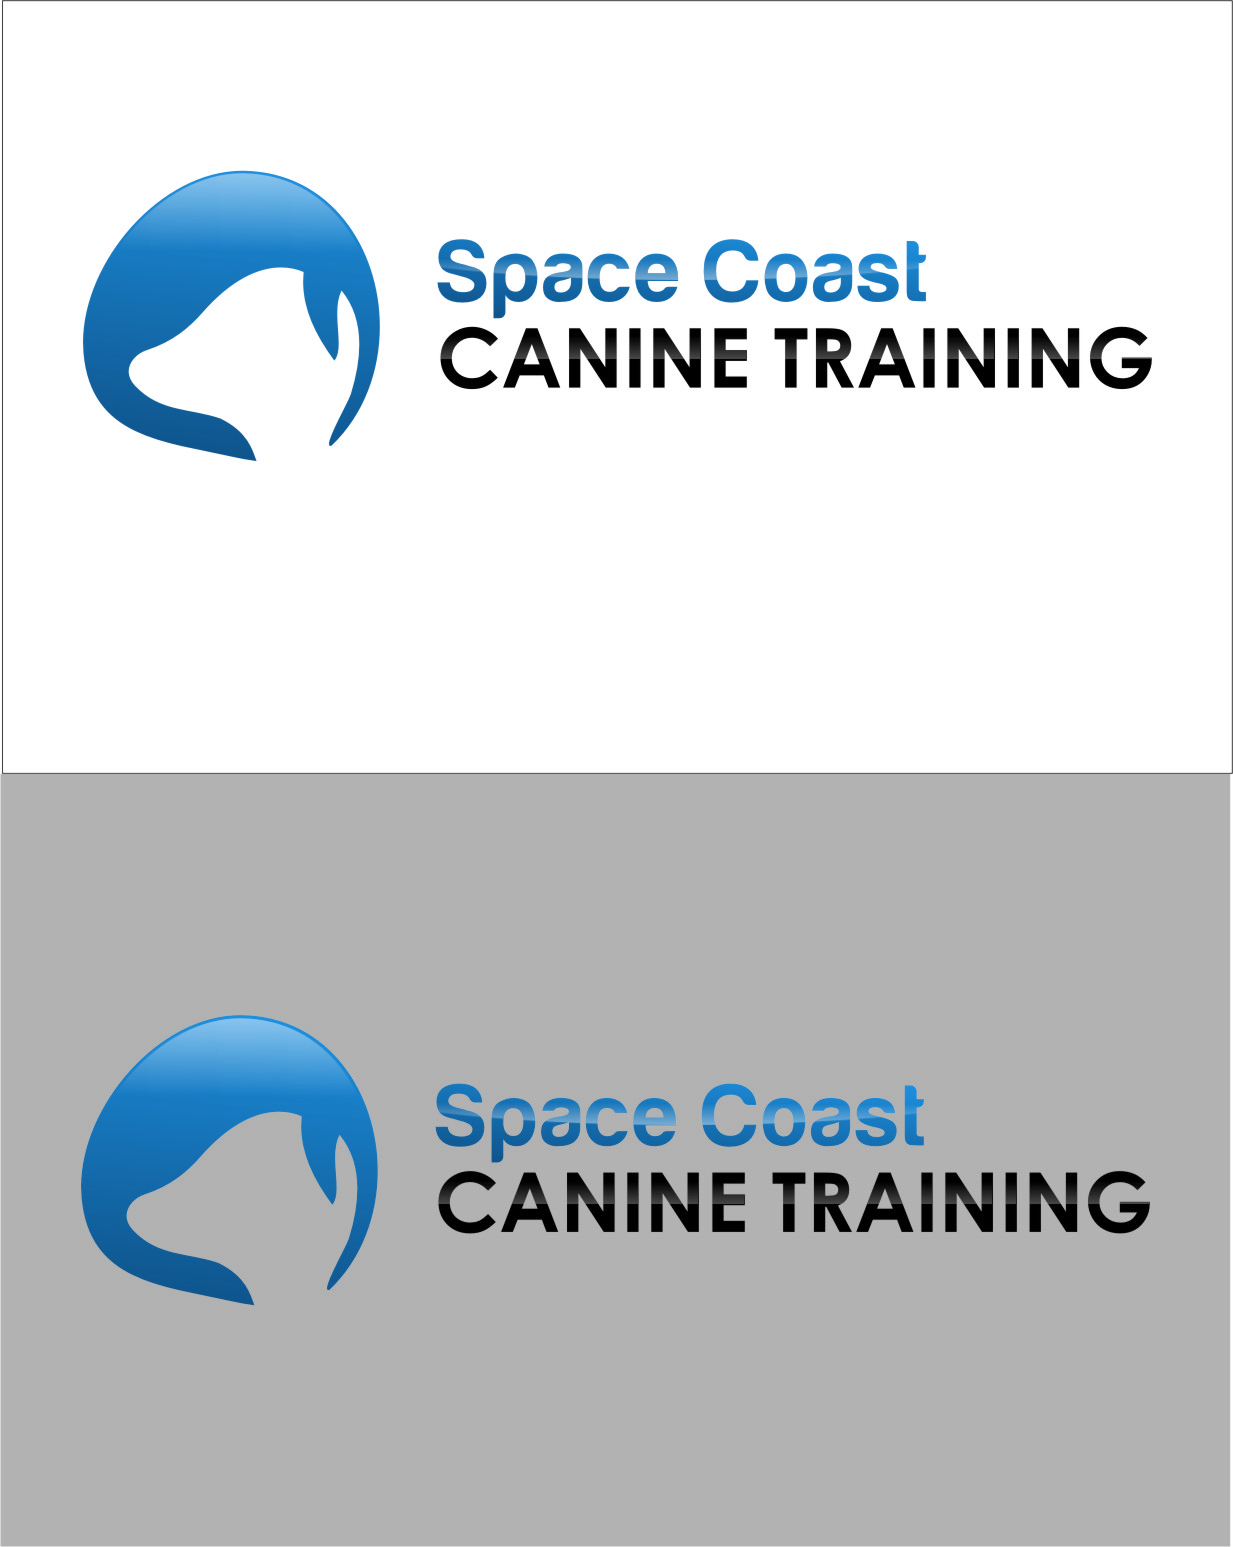 Logo Design by Ngepet_art - Entry No. 58 in the Logo Design Contest Creative Logo Design for Space Coast Canine Training.